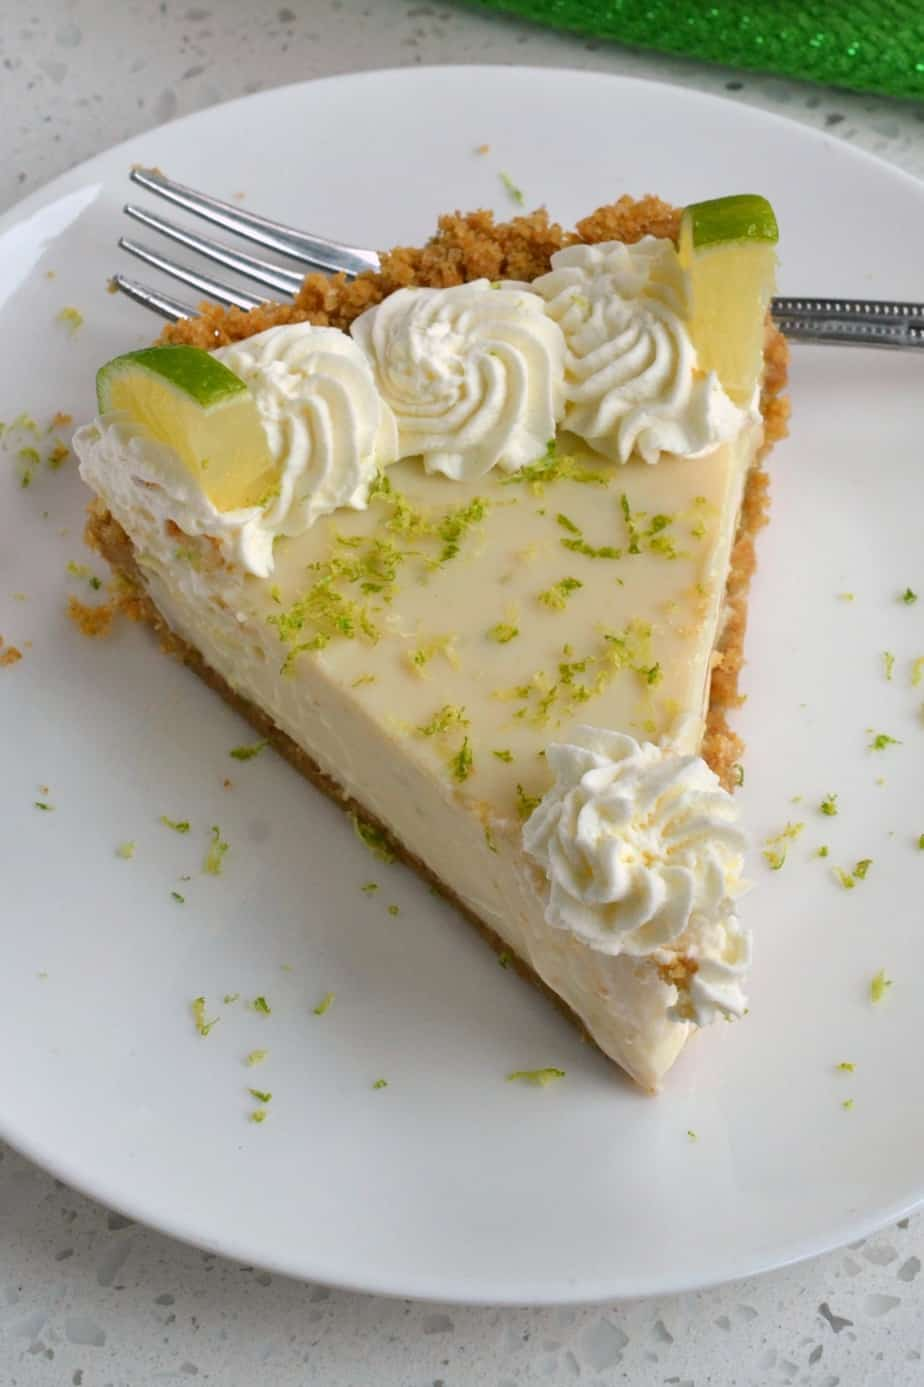 With a four ingredient crust and four ingredient filling this key lime pie comes together quickly and easily.